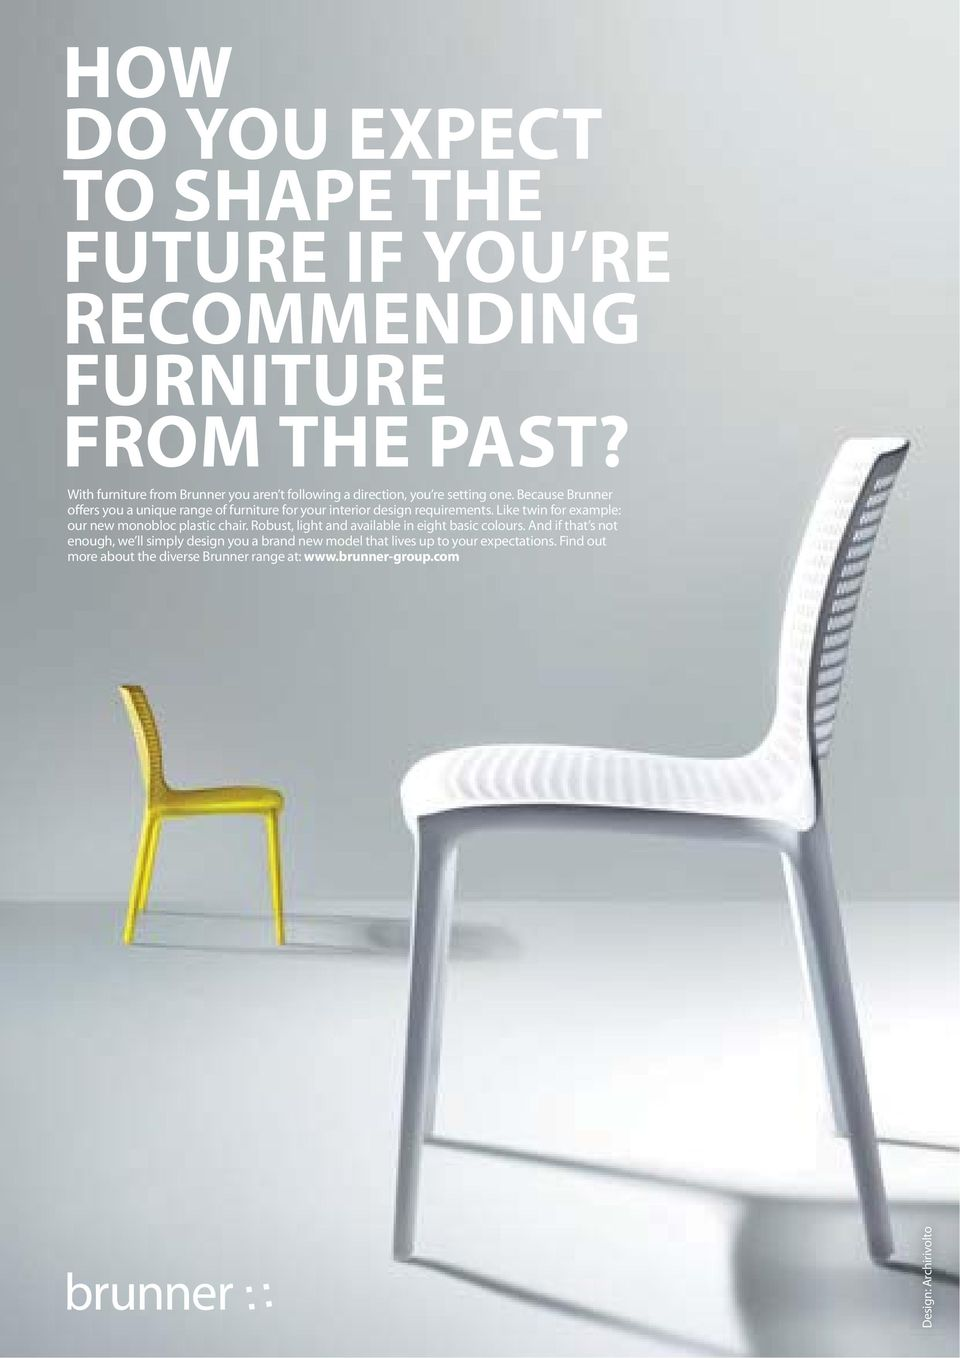 Because Brunner offers you a unique range of furniture for your interior design requirements.